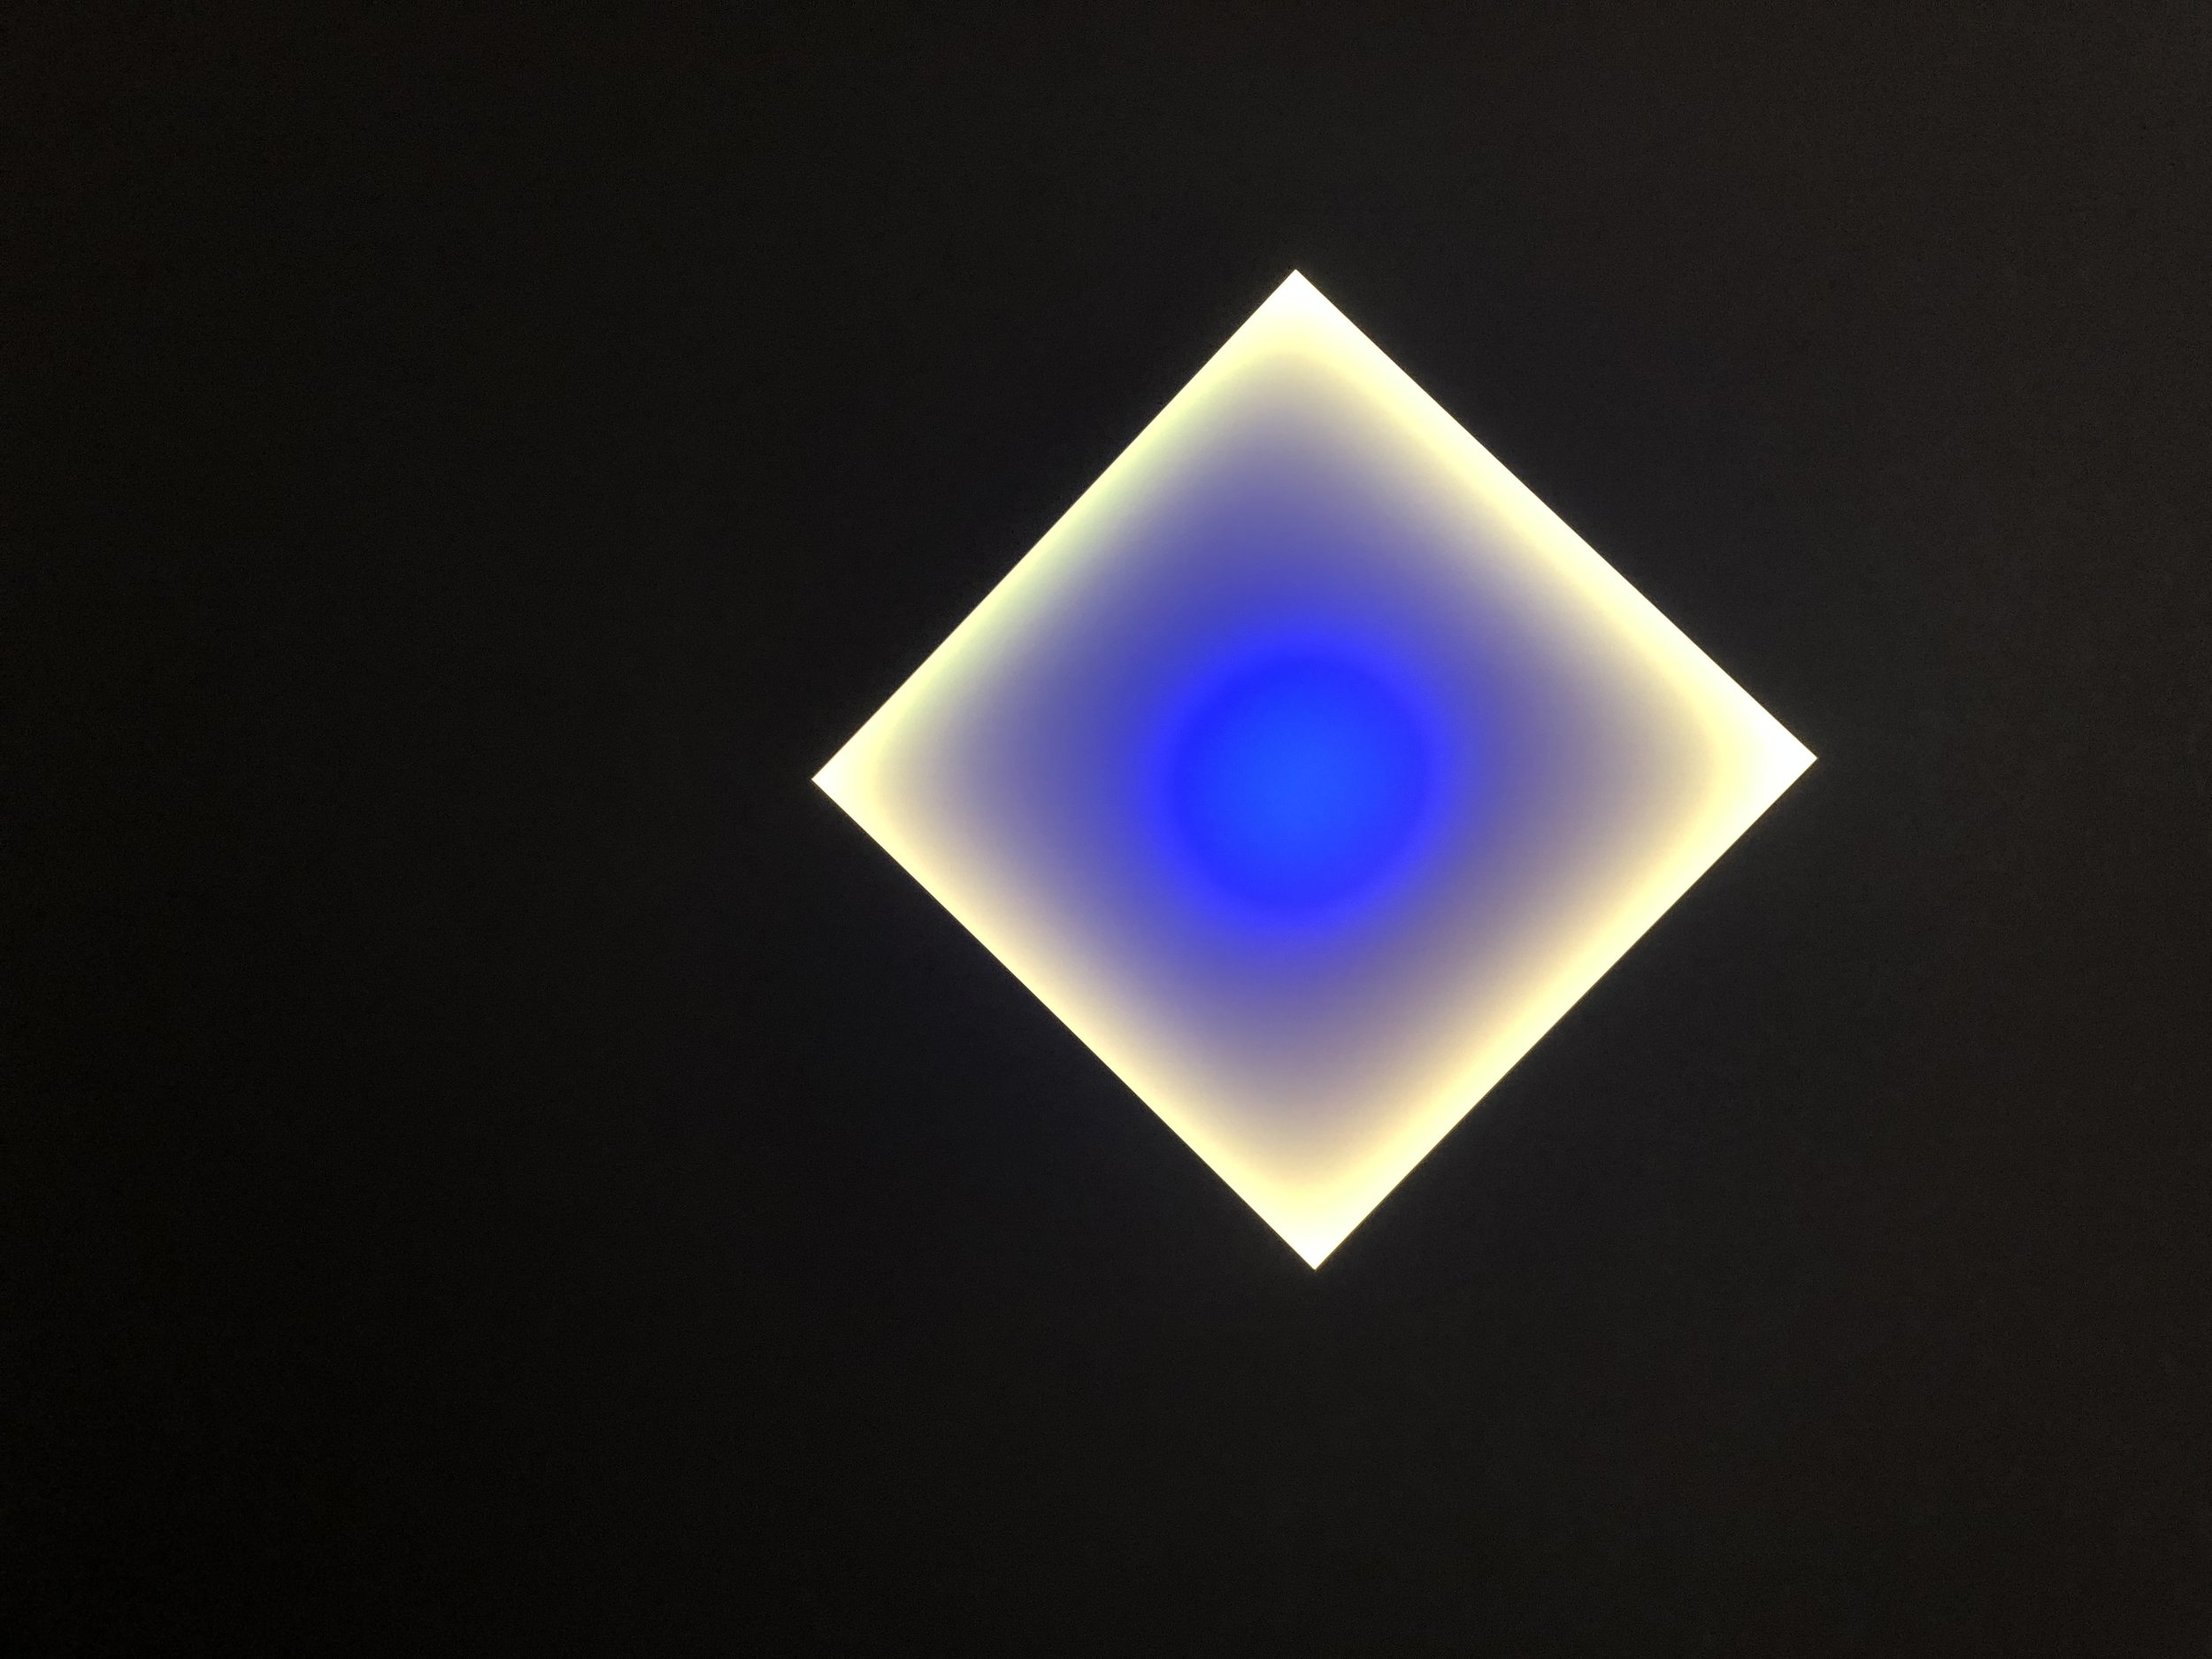 James Turrell,  Medium Diamond Glass,  2018 L.E.D. light, etched glass and shallow space 54 x 54 inches